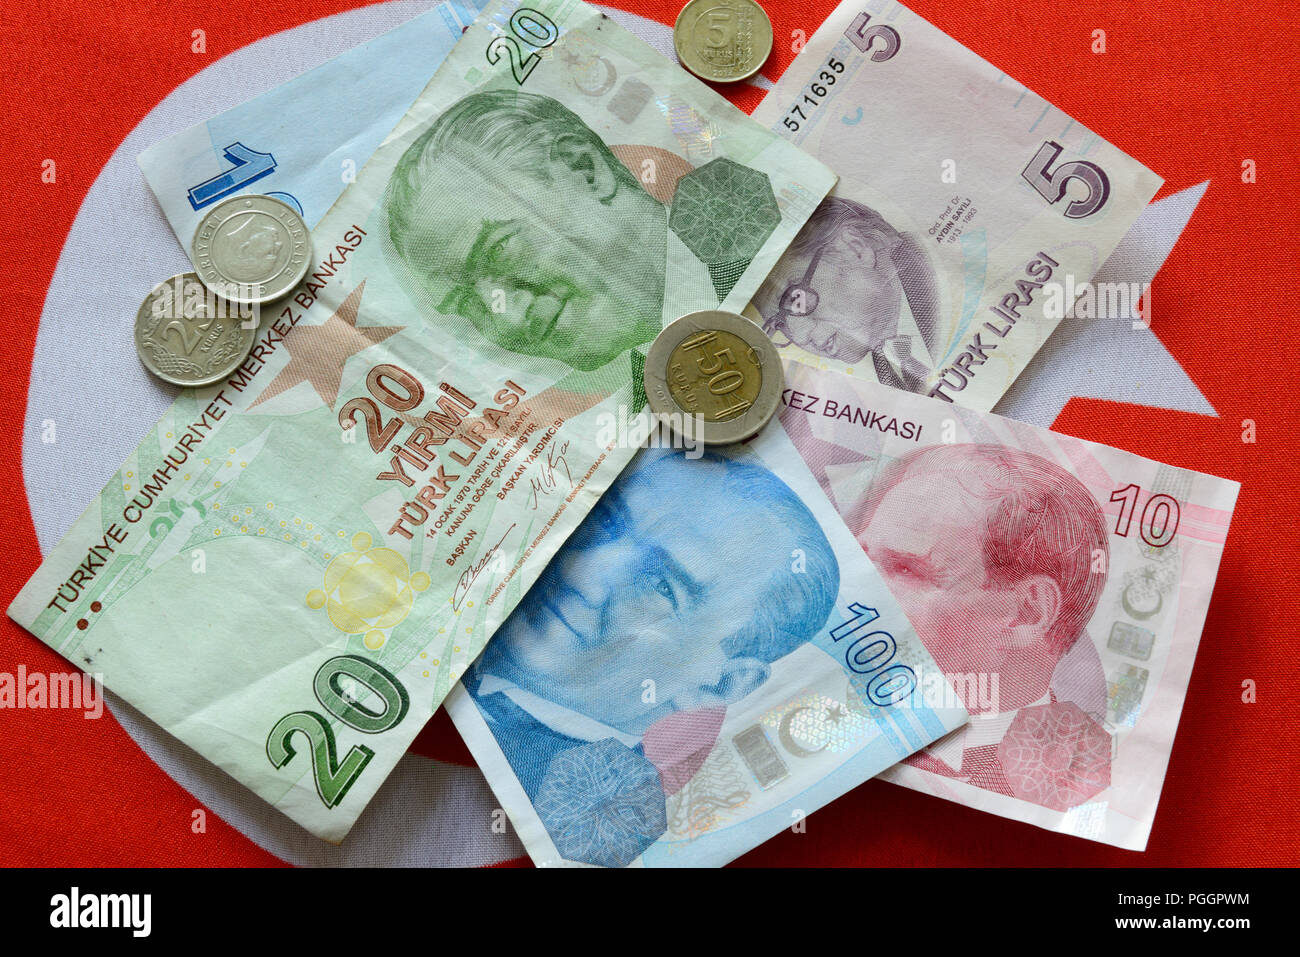 Turkish Lira bills and coins on turkish flag. The Turkish Lira is the national currency of Turkey. Stock Photo